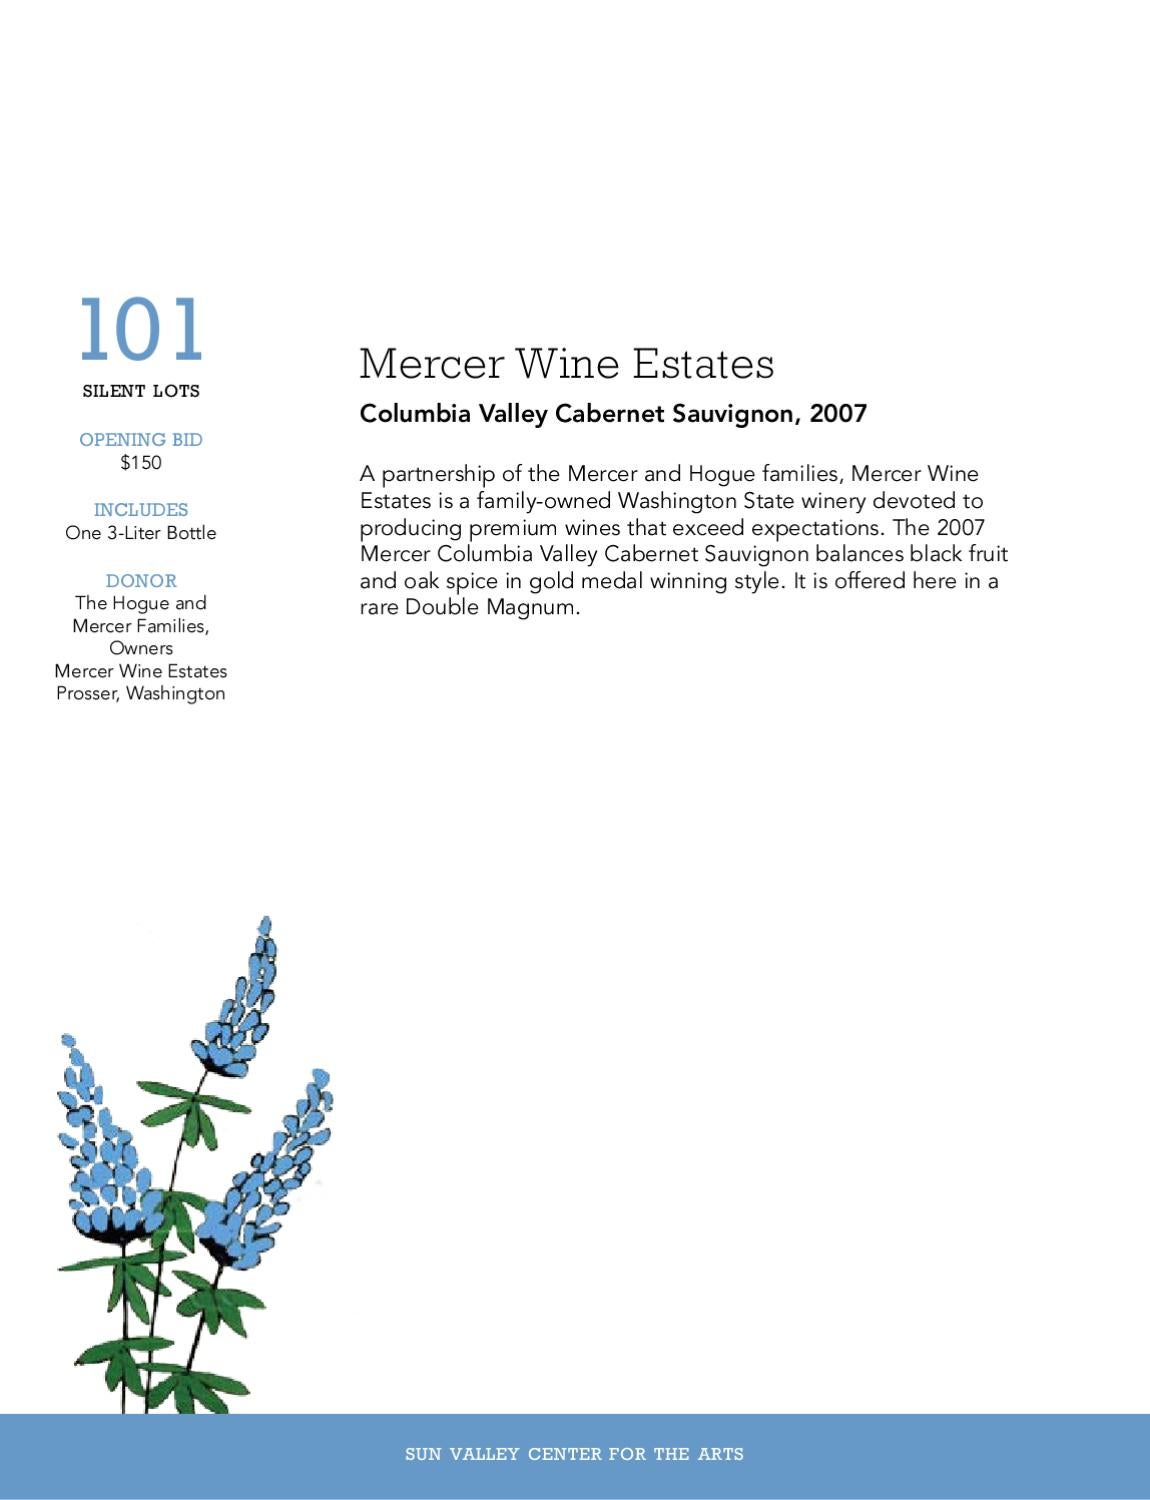 2010 Sun Valley Center Wine Auction Catalog by Sun Valley Center for